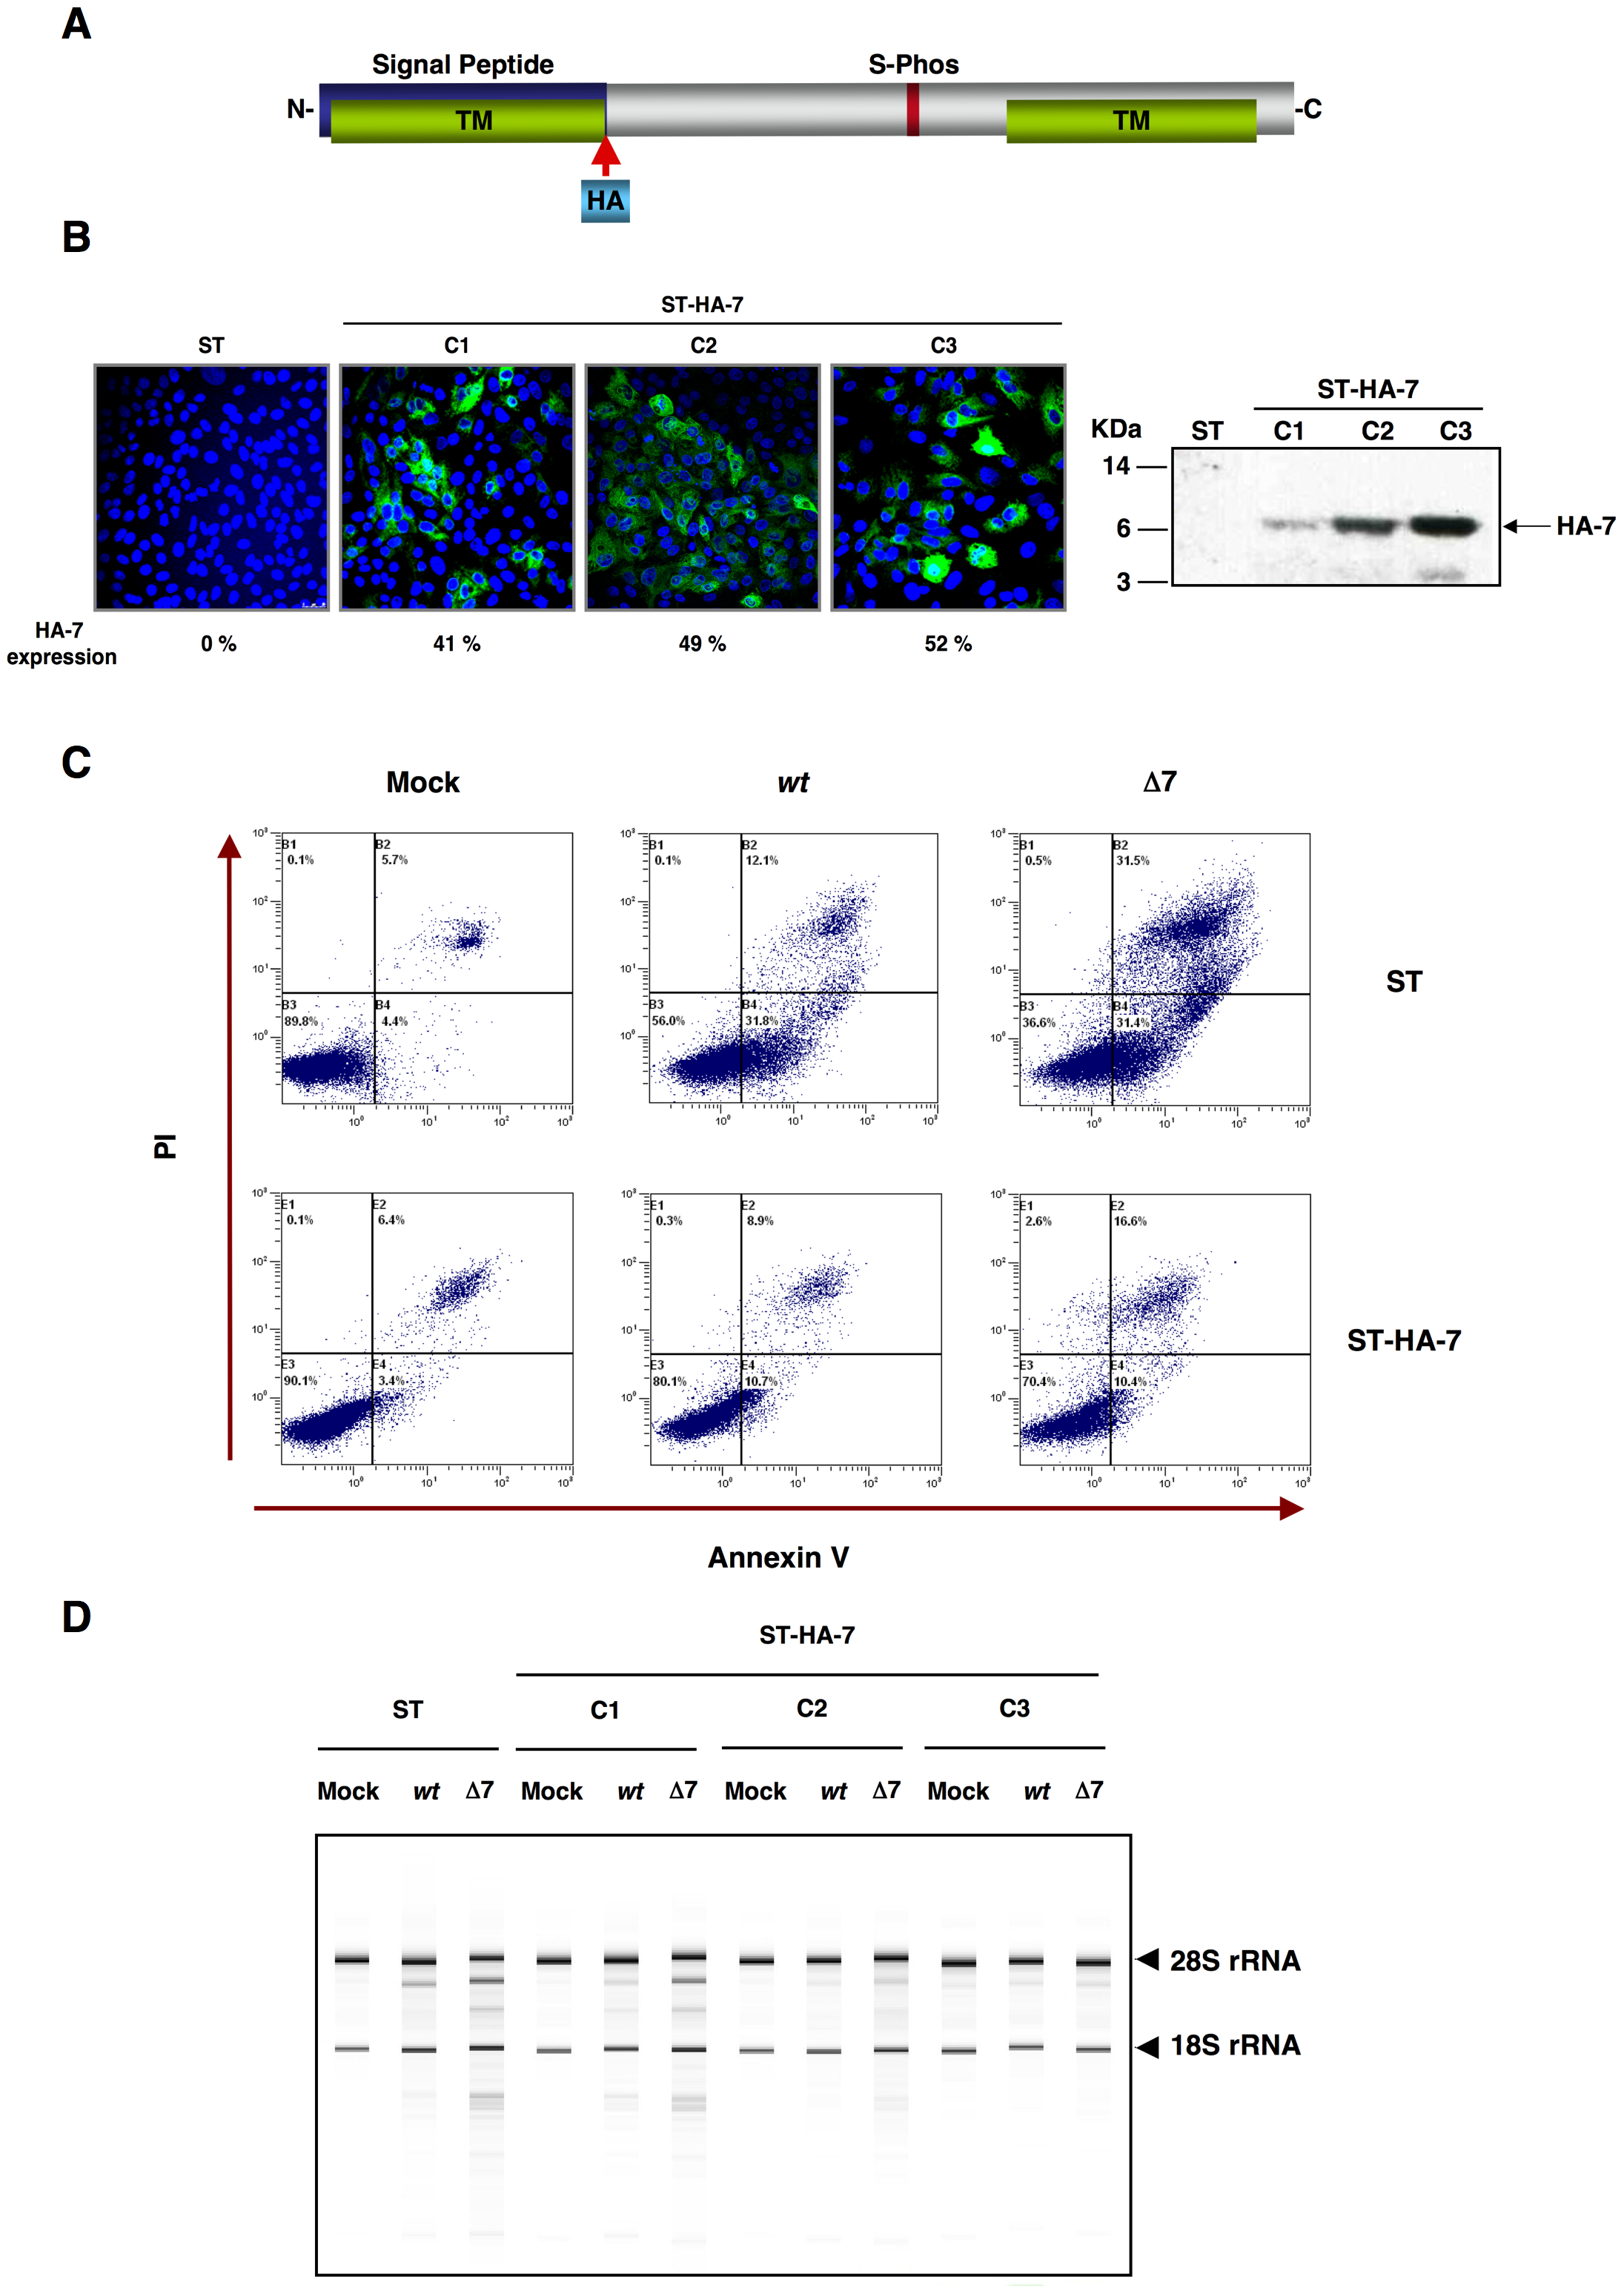 Complementation of rTGEV-Δ7 produced apoptosis and RNA degradation by protein 7 provided <i>in trans</i>.